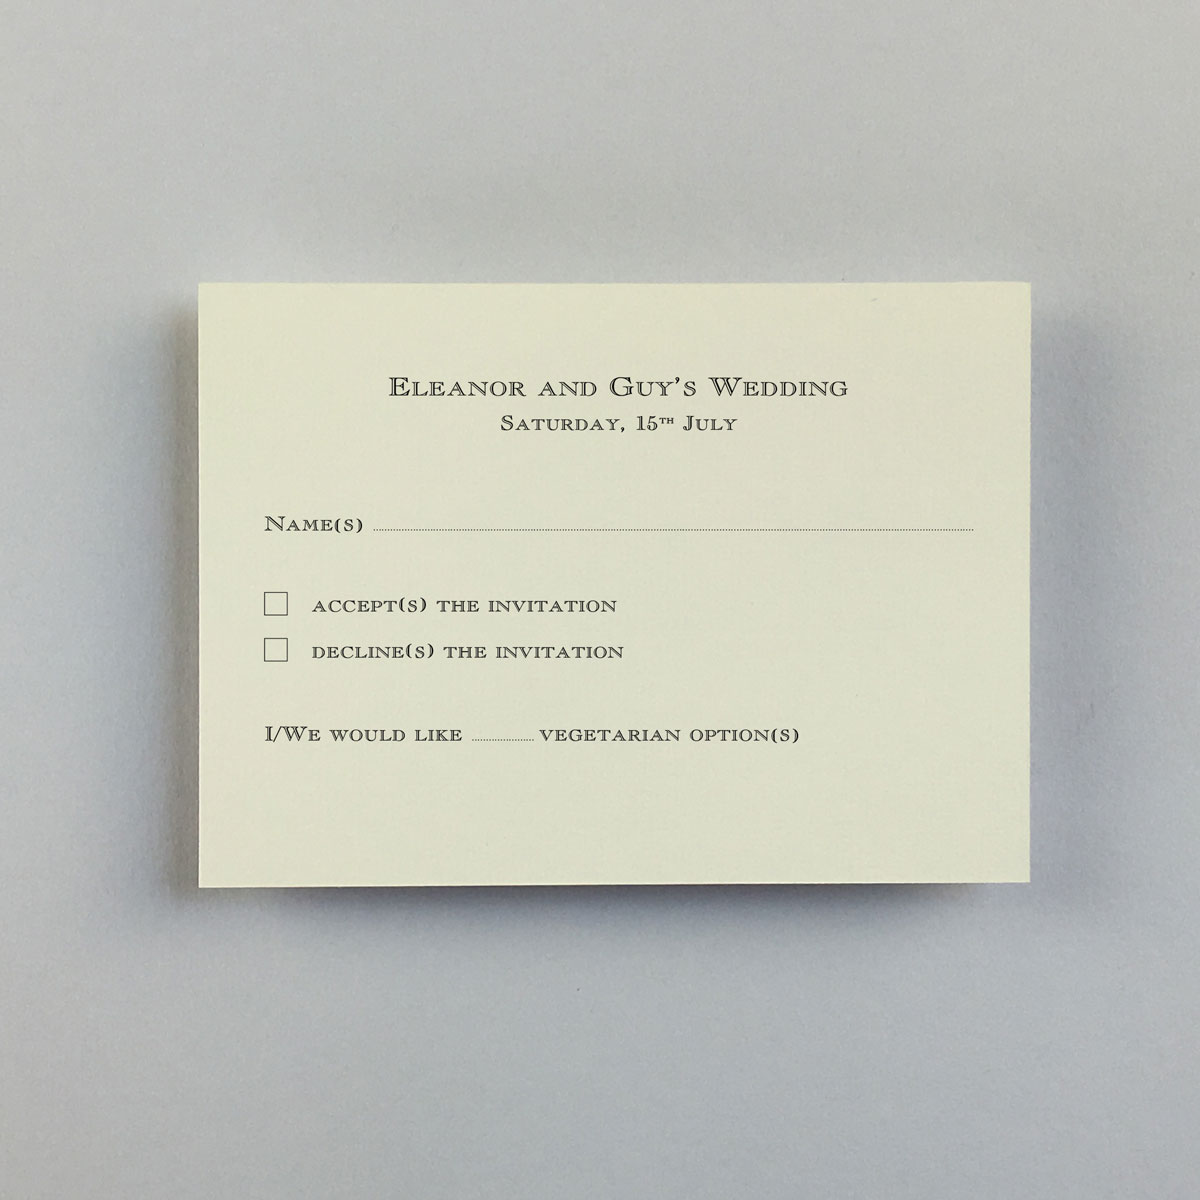 Stockbridge Reply Cards - Wedding Stationery